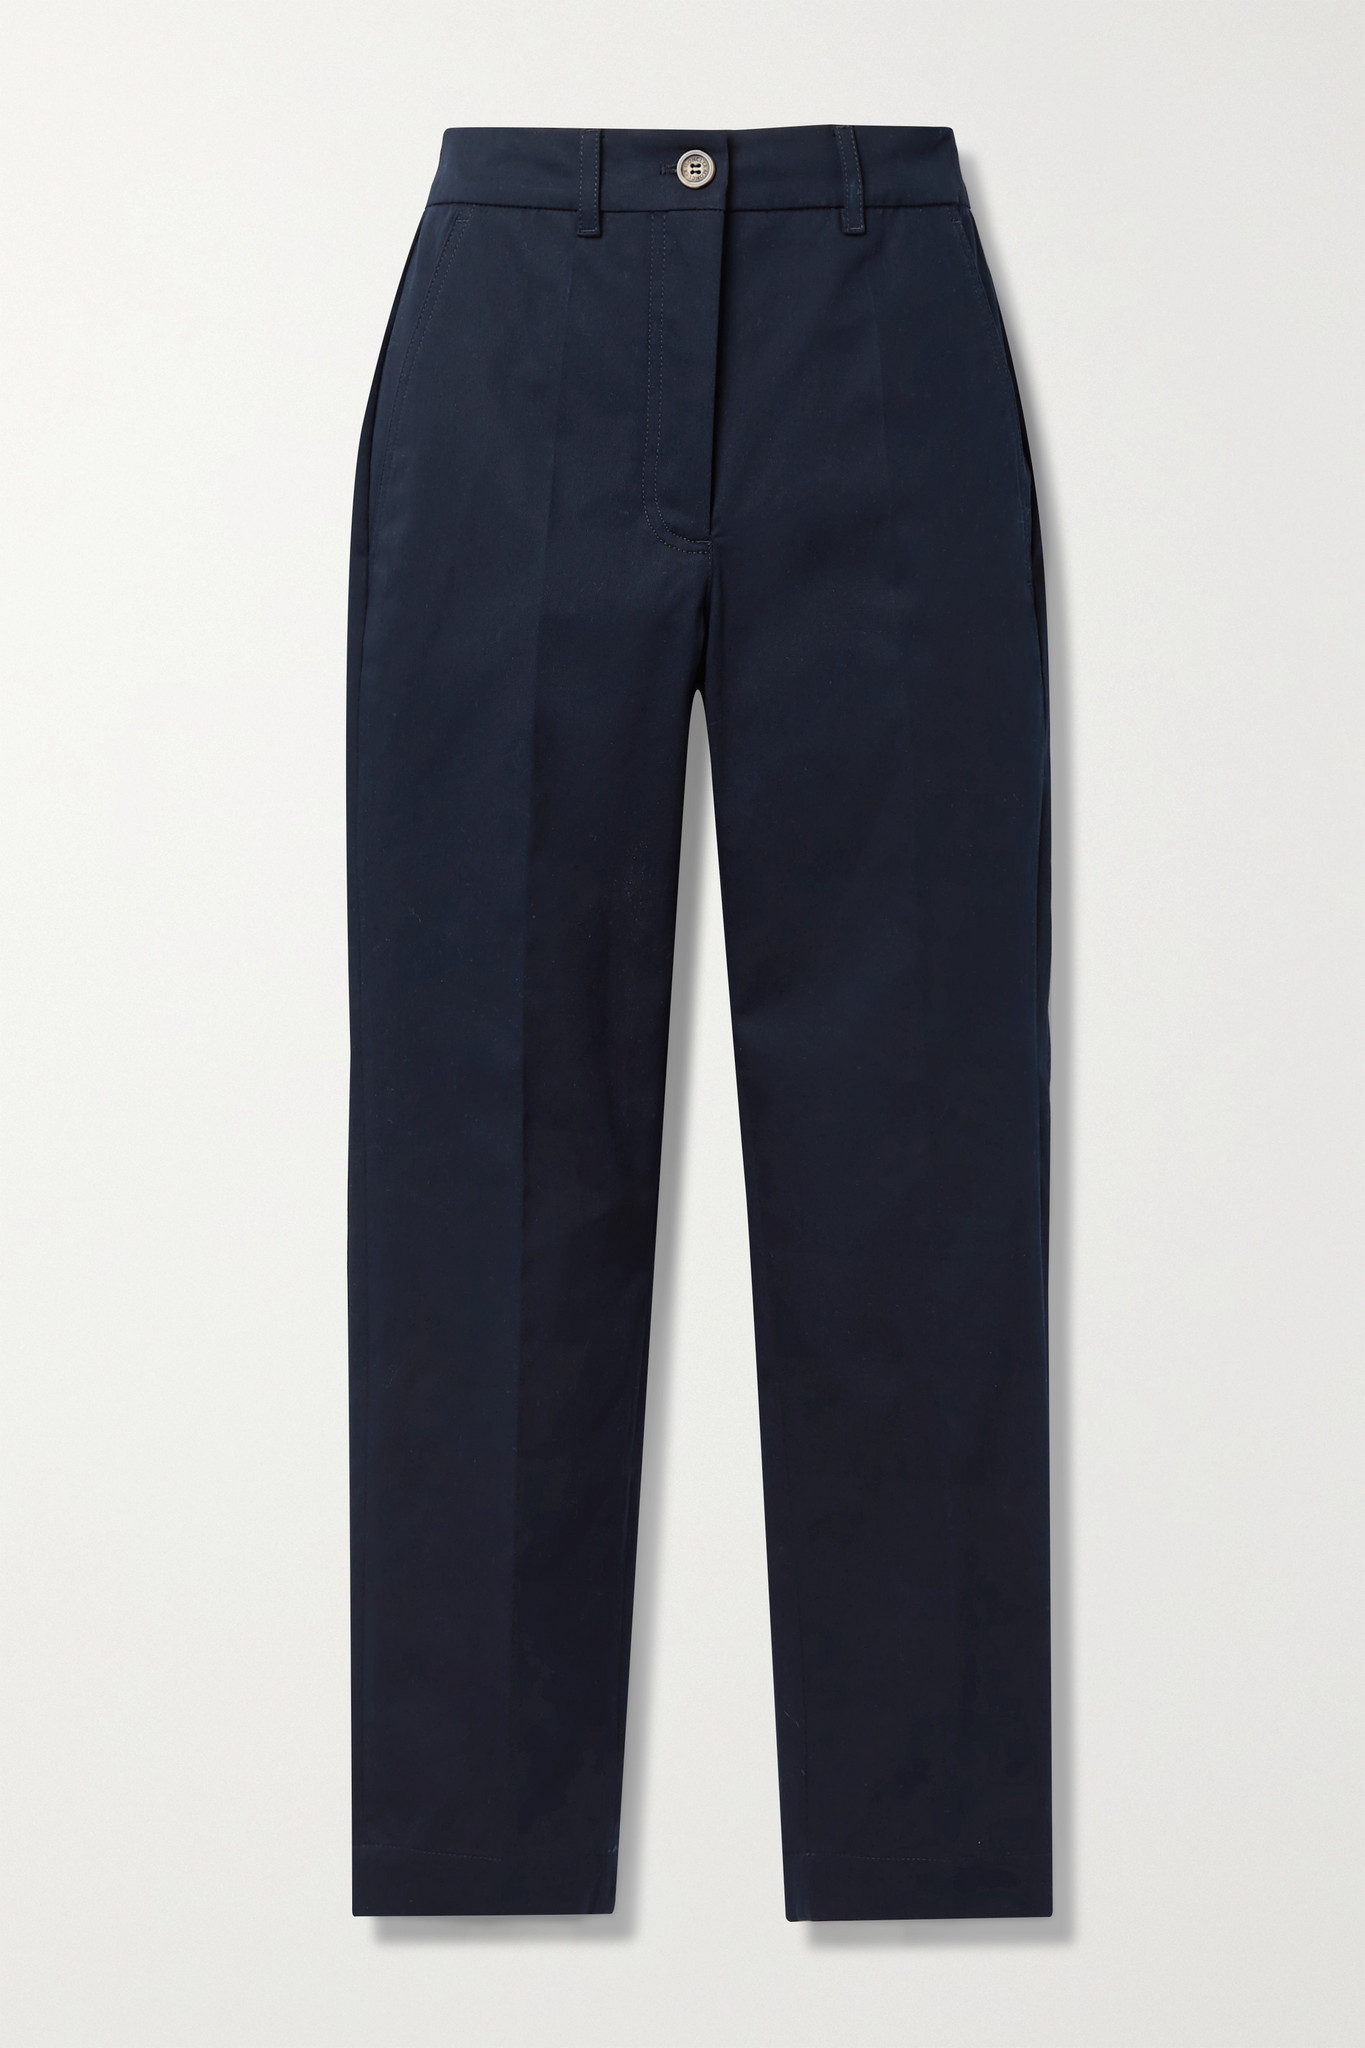 MONCLER - Cotton-blend Twill Tapered Pants - Blue - IT38